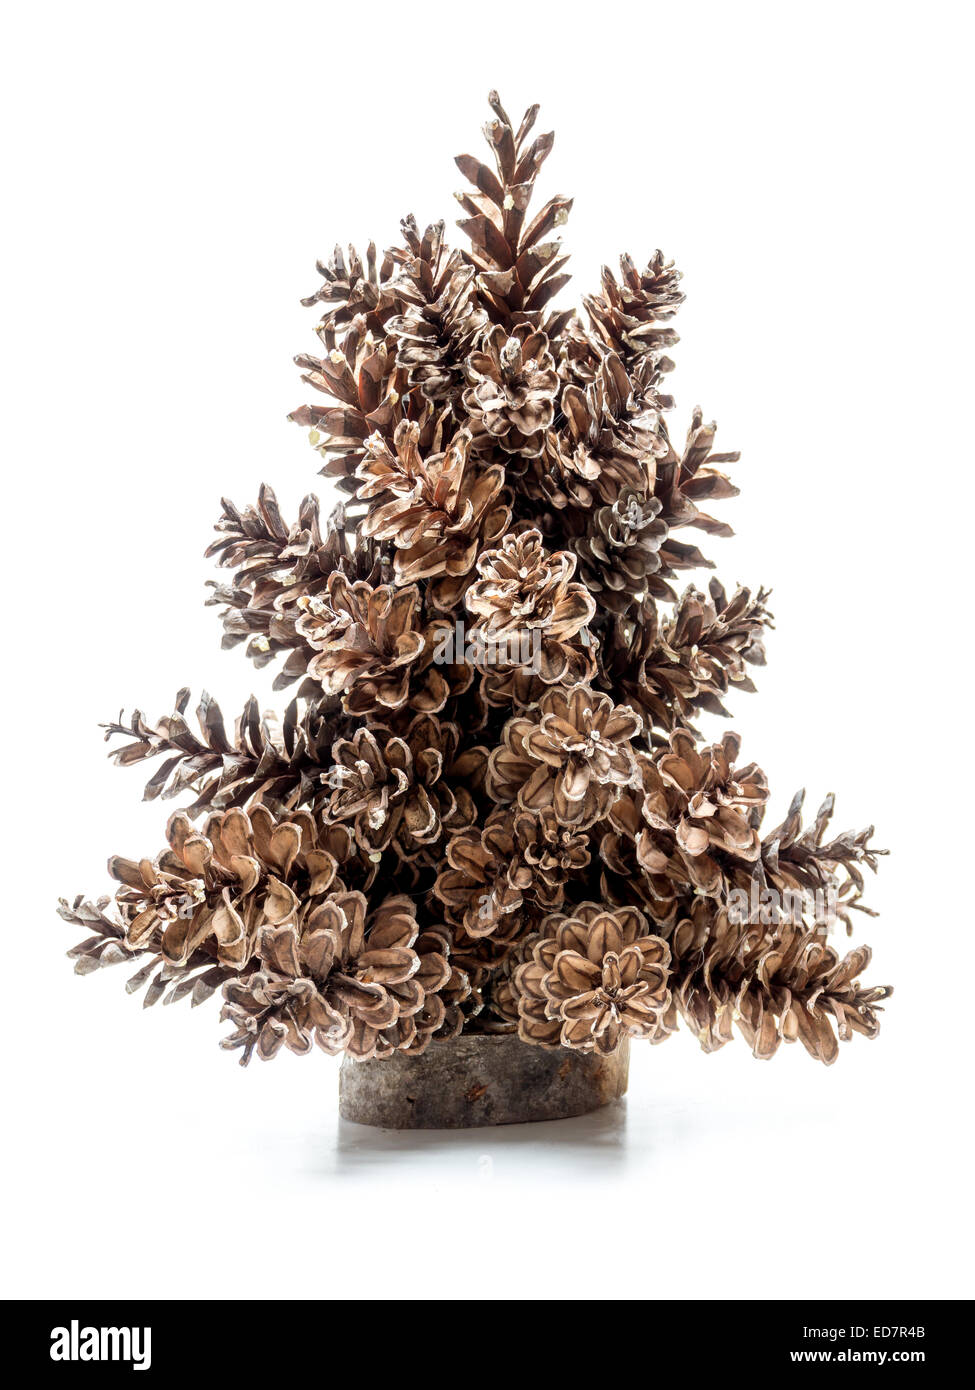 Miniature christmas tree made of spruce cones over white background - Stock Image